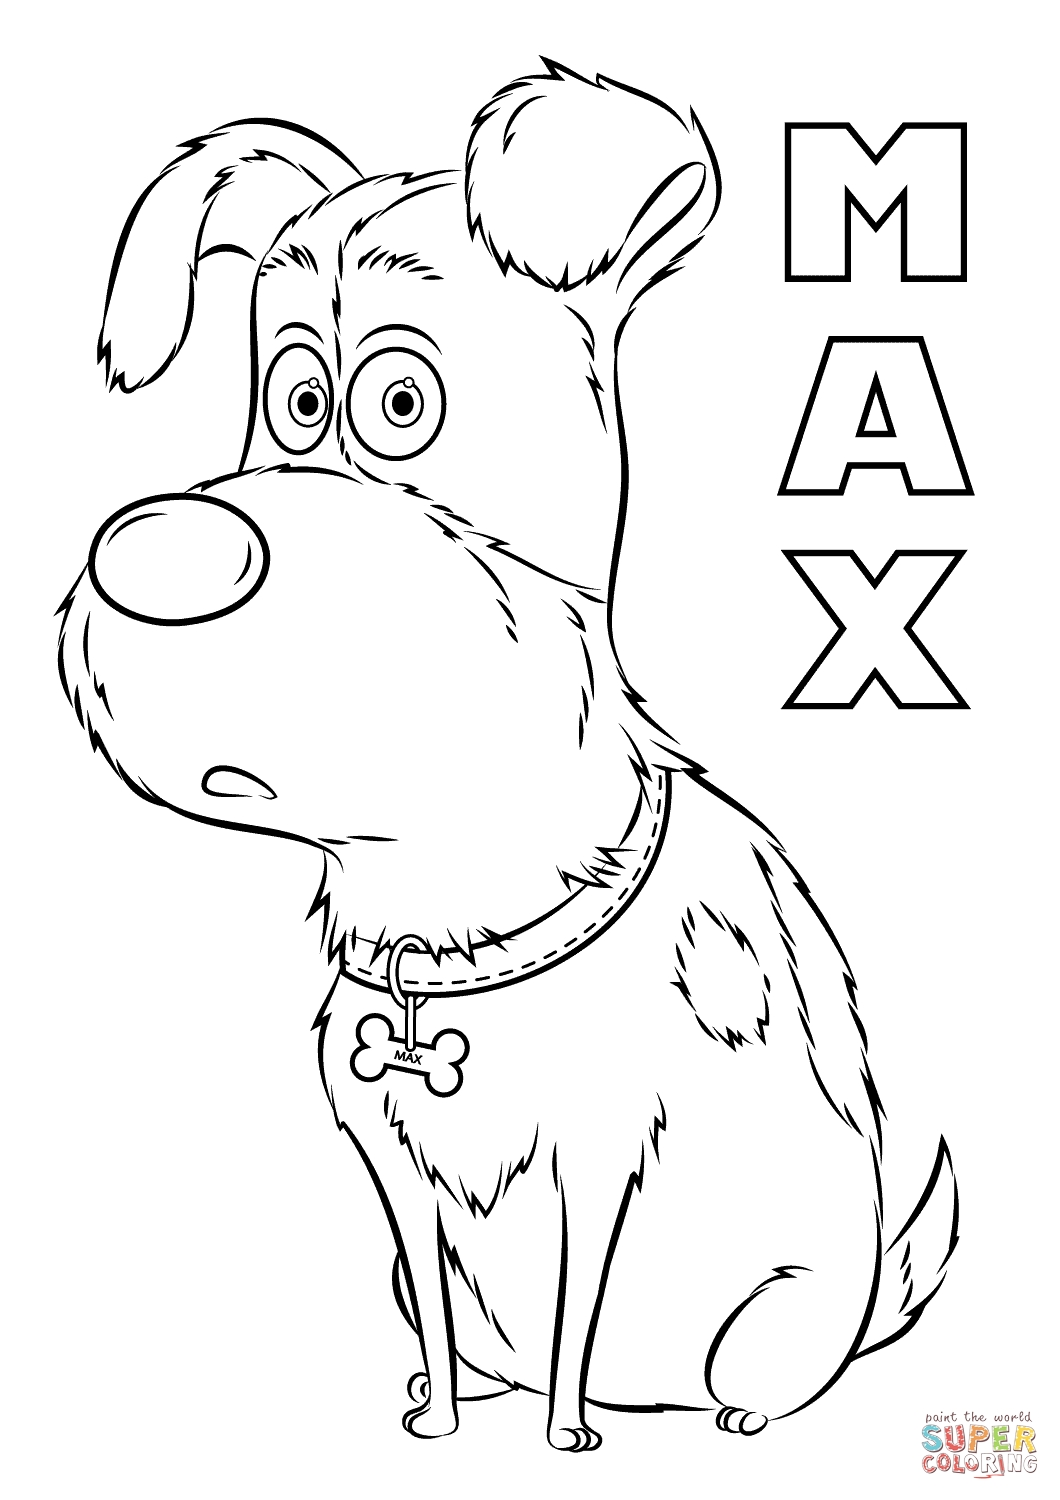 1060x1500 Secret Life Of Pets Coloring Pages Max To Print Coloring